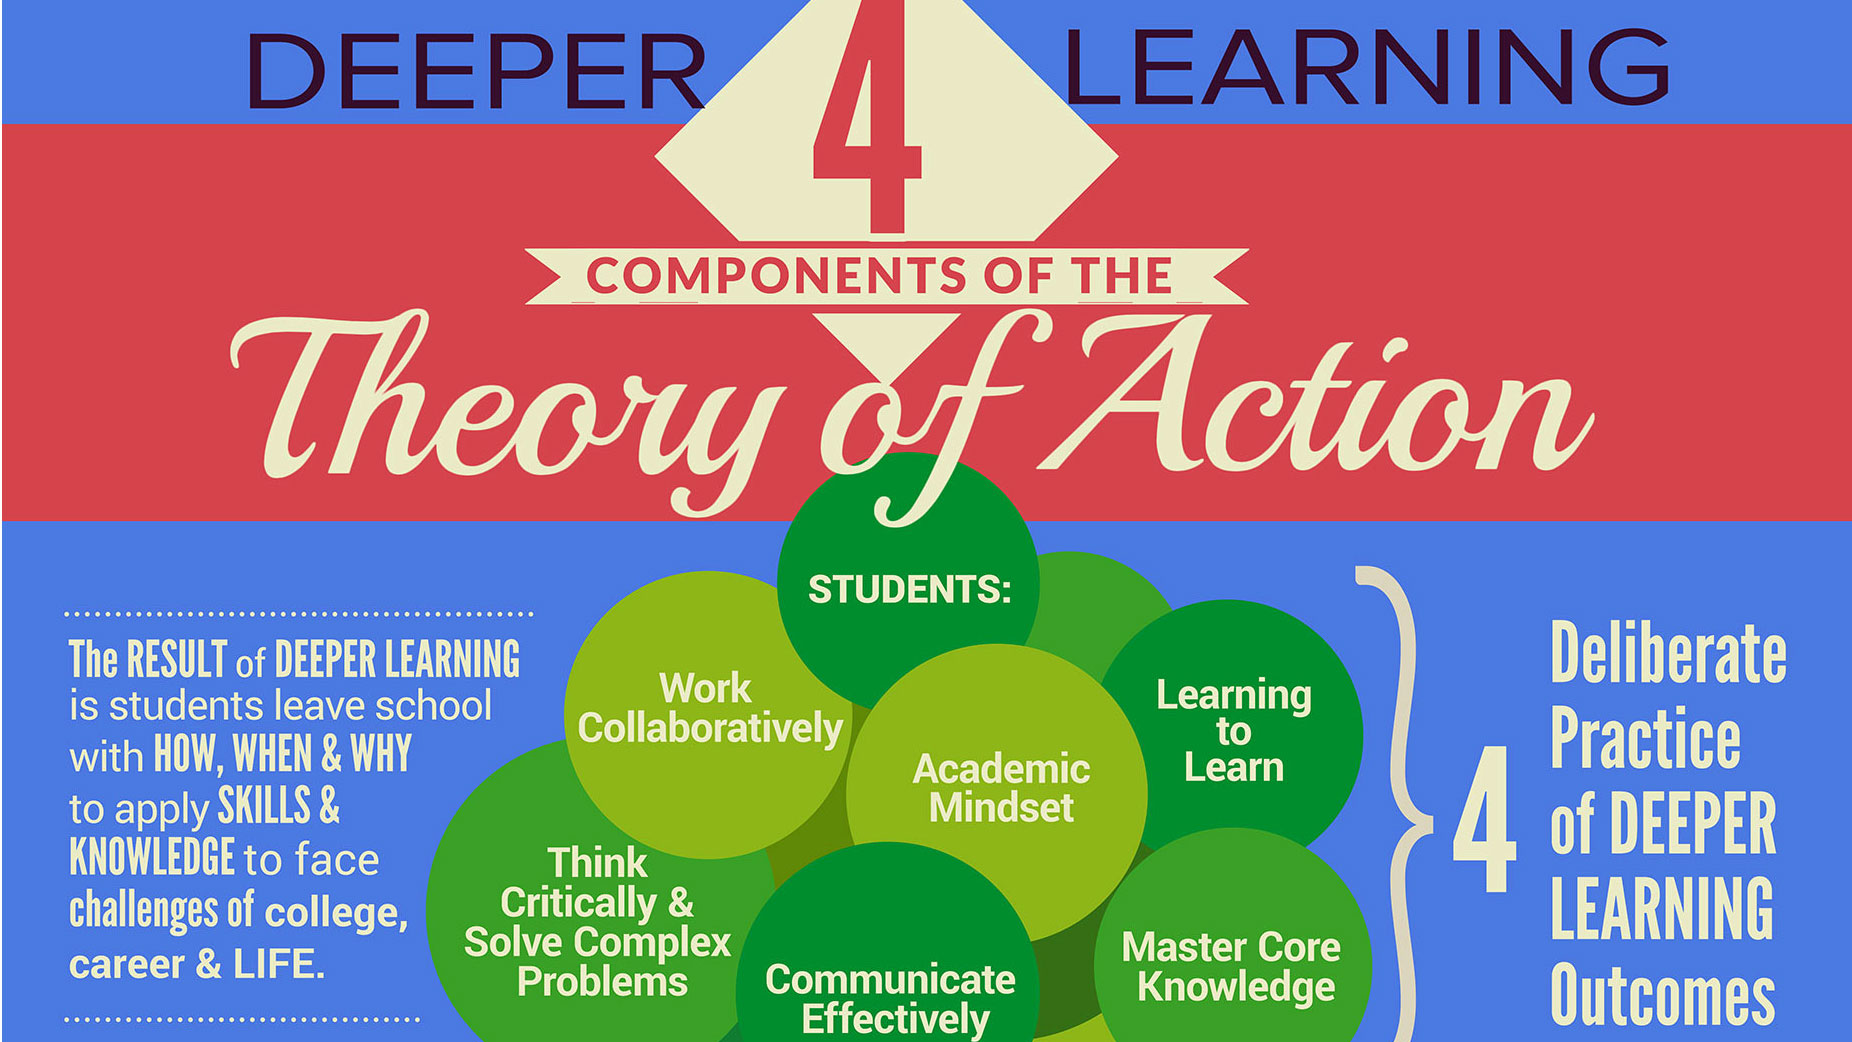 Steps to Create the Conditions for Deep, Rigorous, Applied Learning